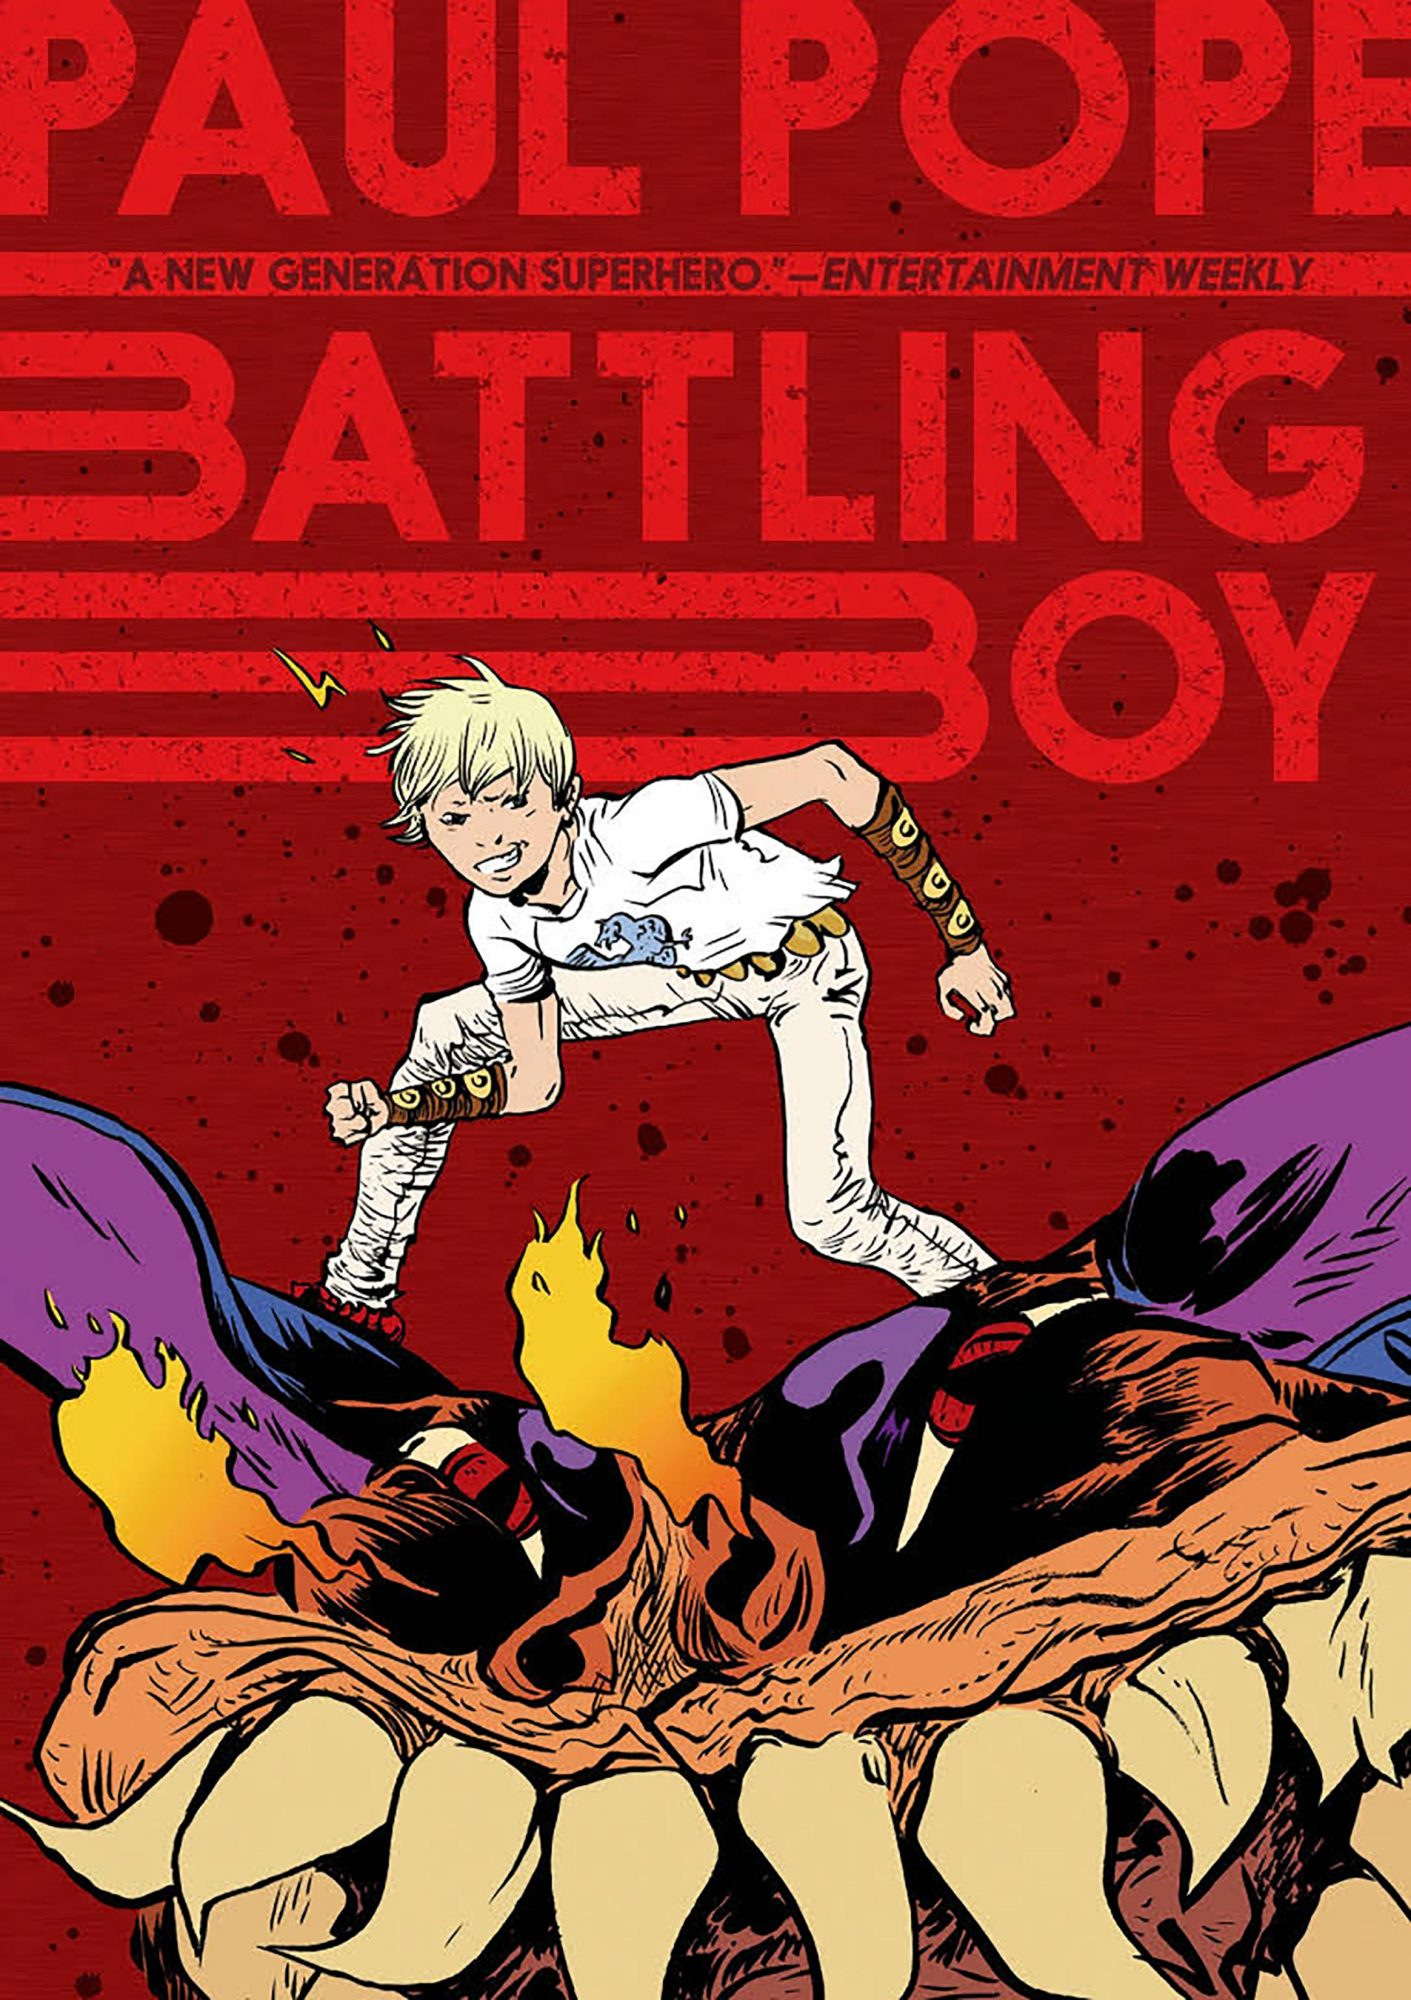 Battling Boy by Paul Pope CR: First Second